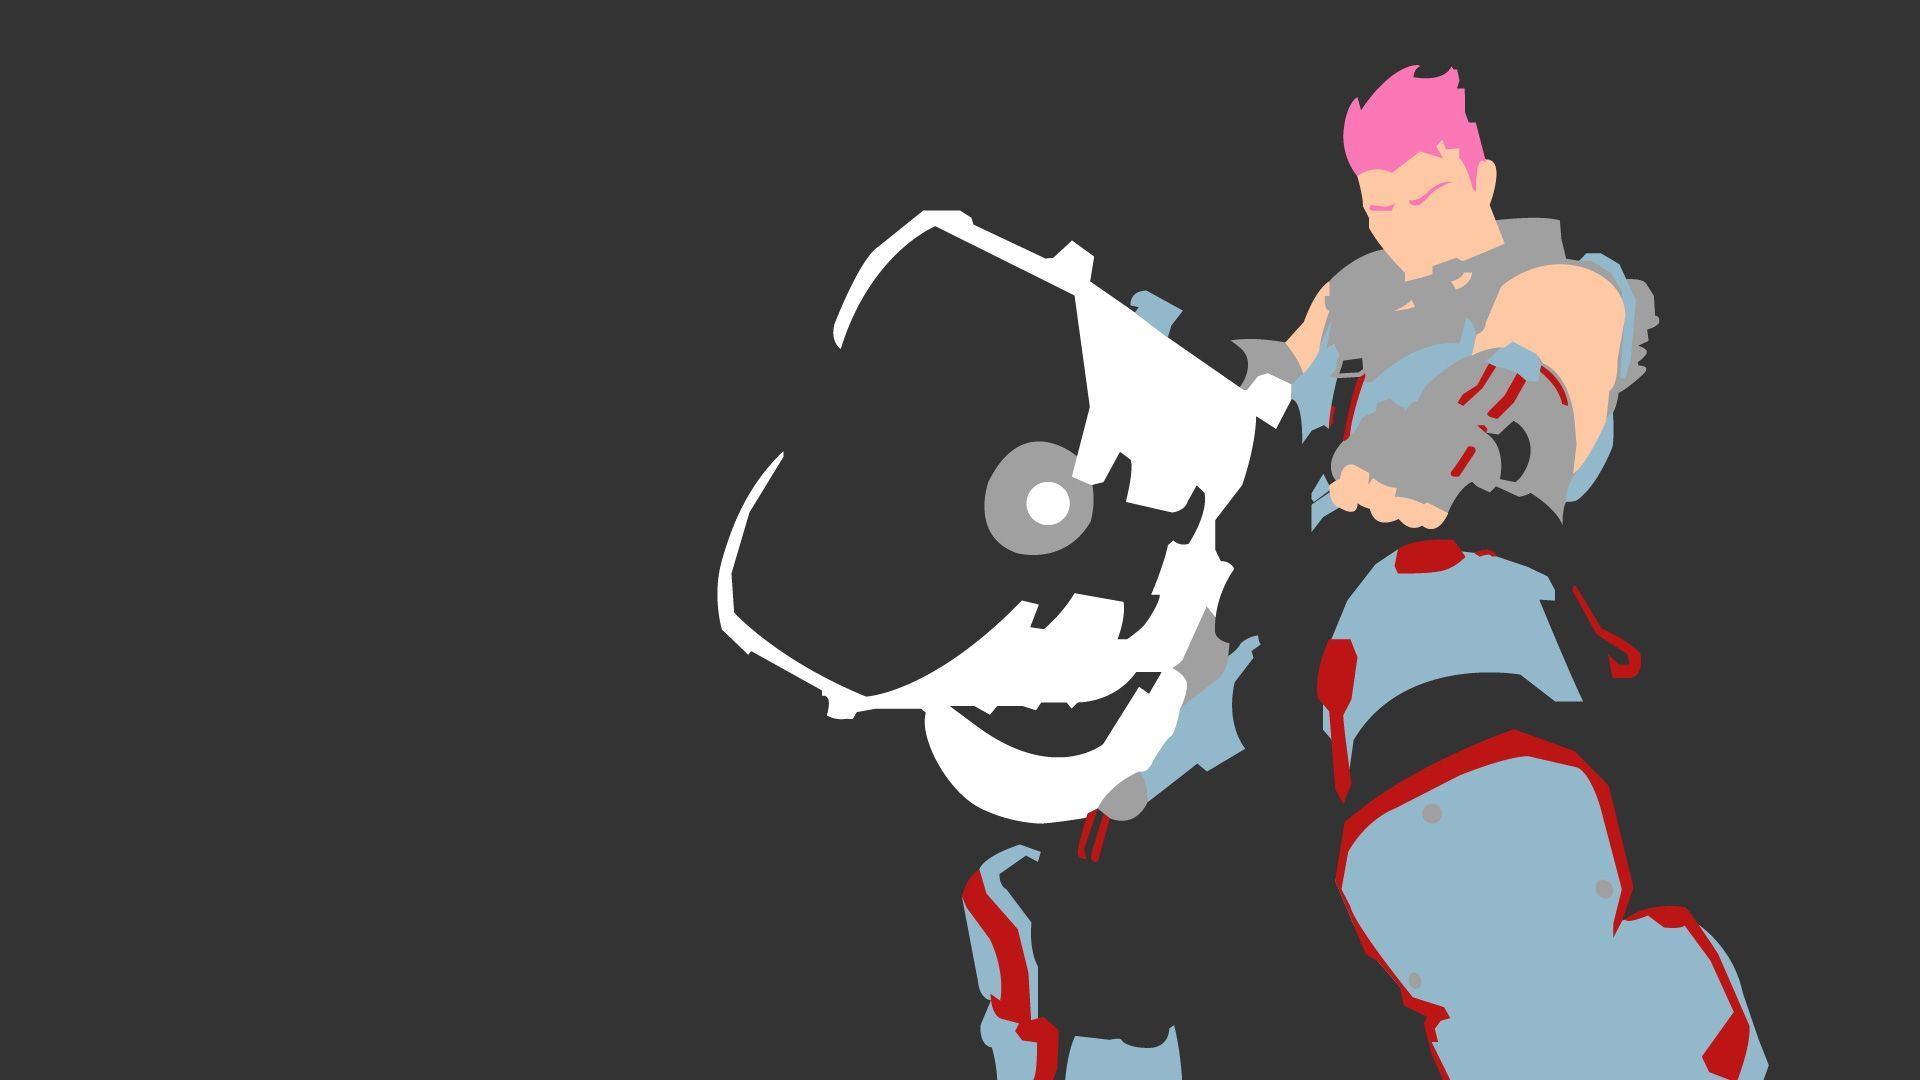 Overwatch Zarya Wallpapers Photo On Wallpapers 1080p HD